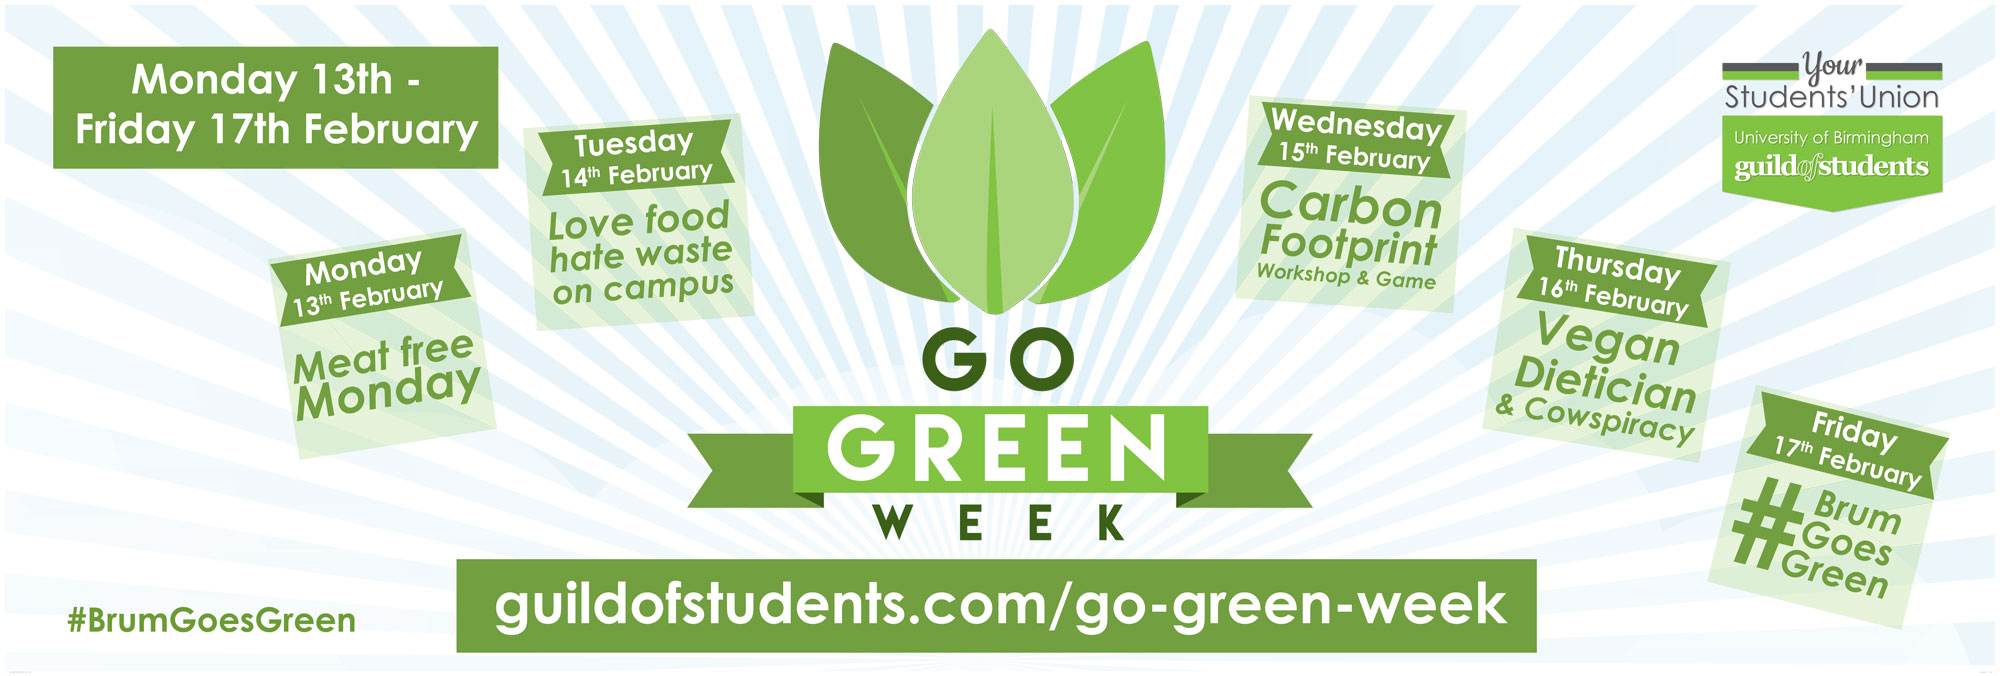 Go Green week banner to promote Guild related sustainability events